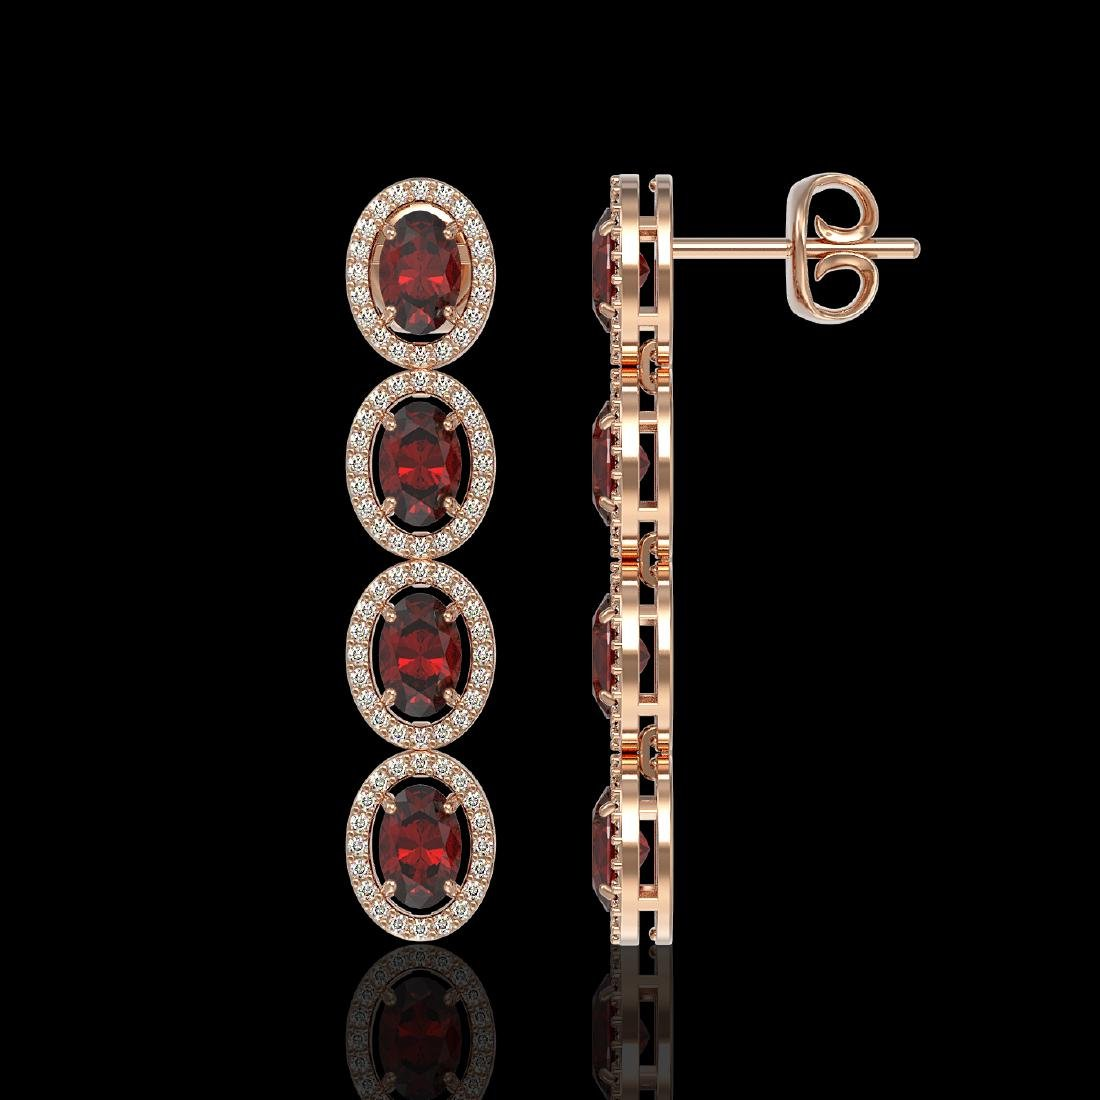 6.2 CTW Garnet & Diamond Halo Earrings 10K Rose Gold - 2